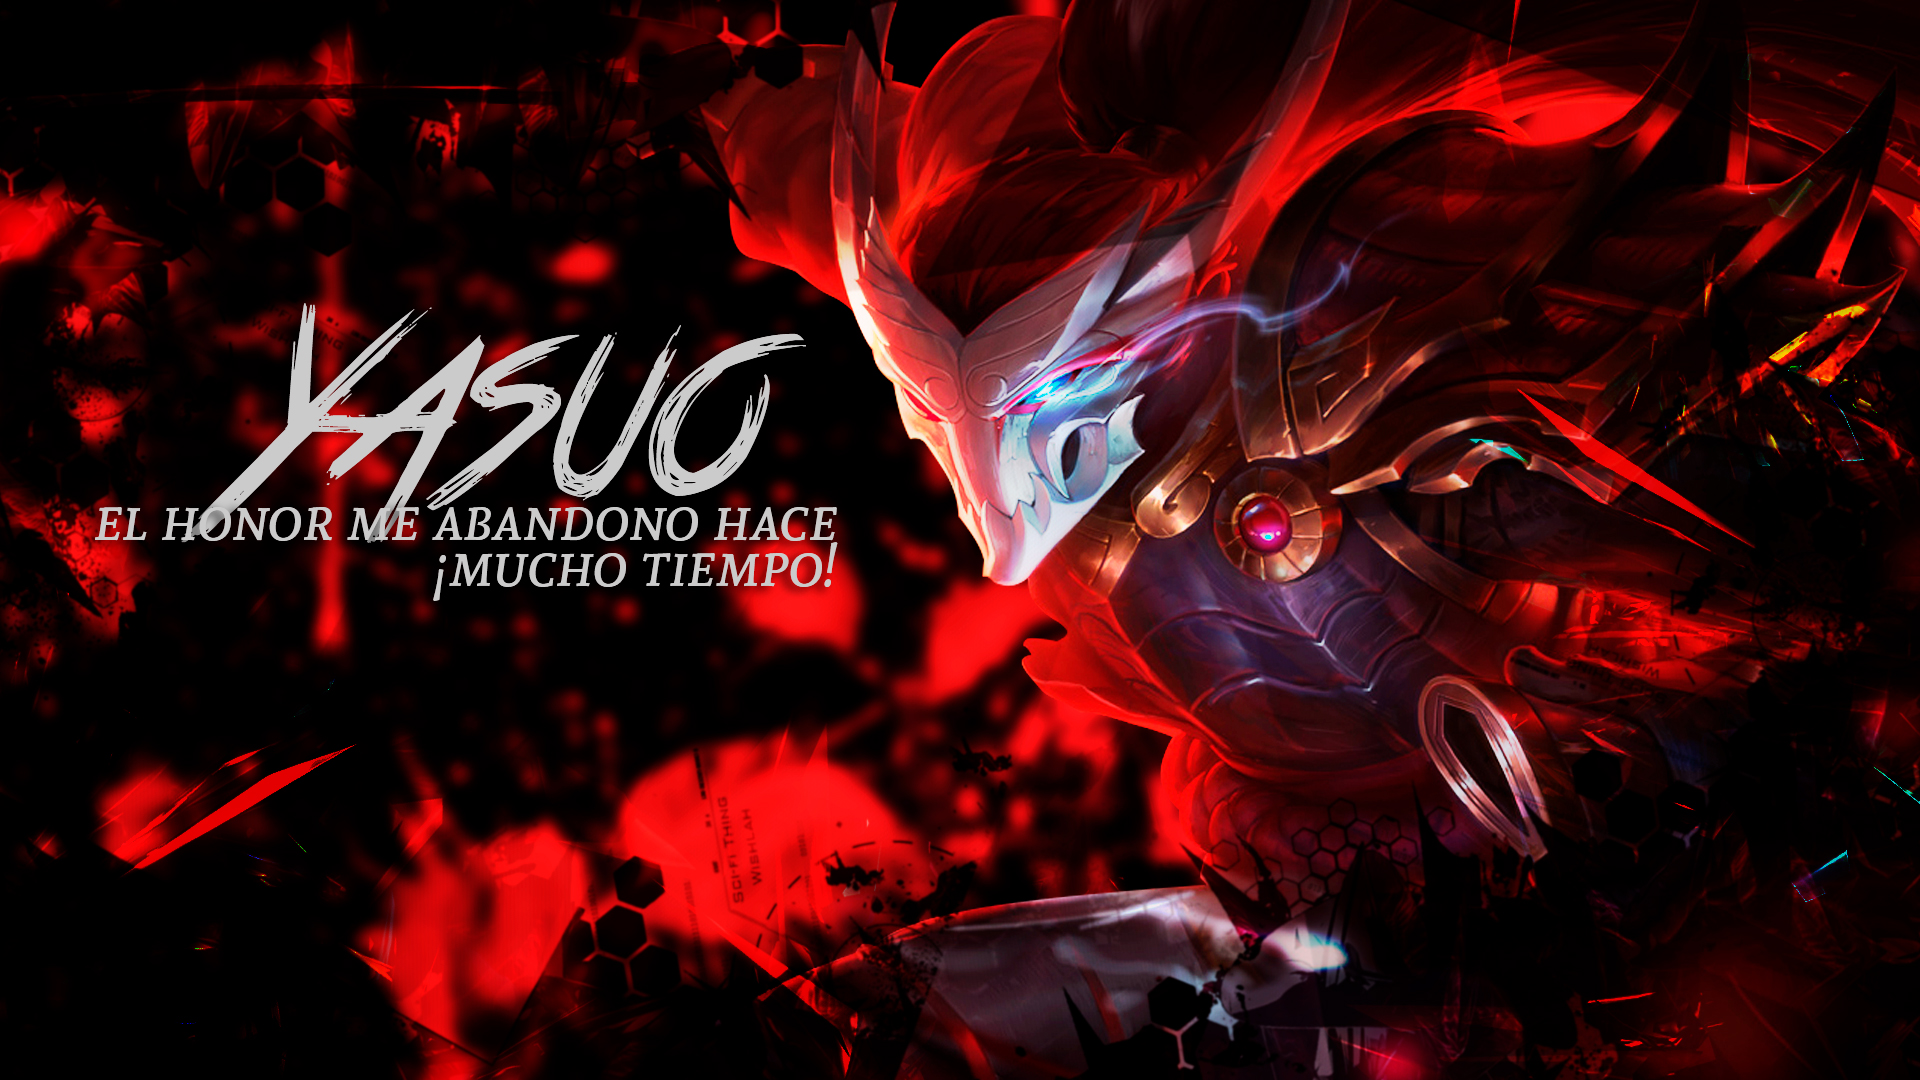 Wallpaper Yasuo League Of Legends By Dead07 On Deviantart